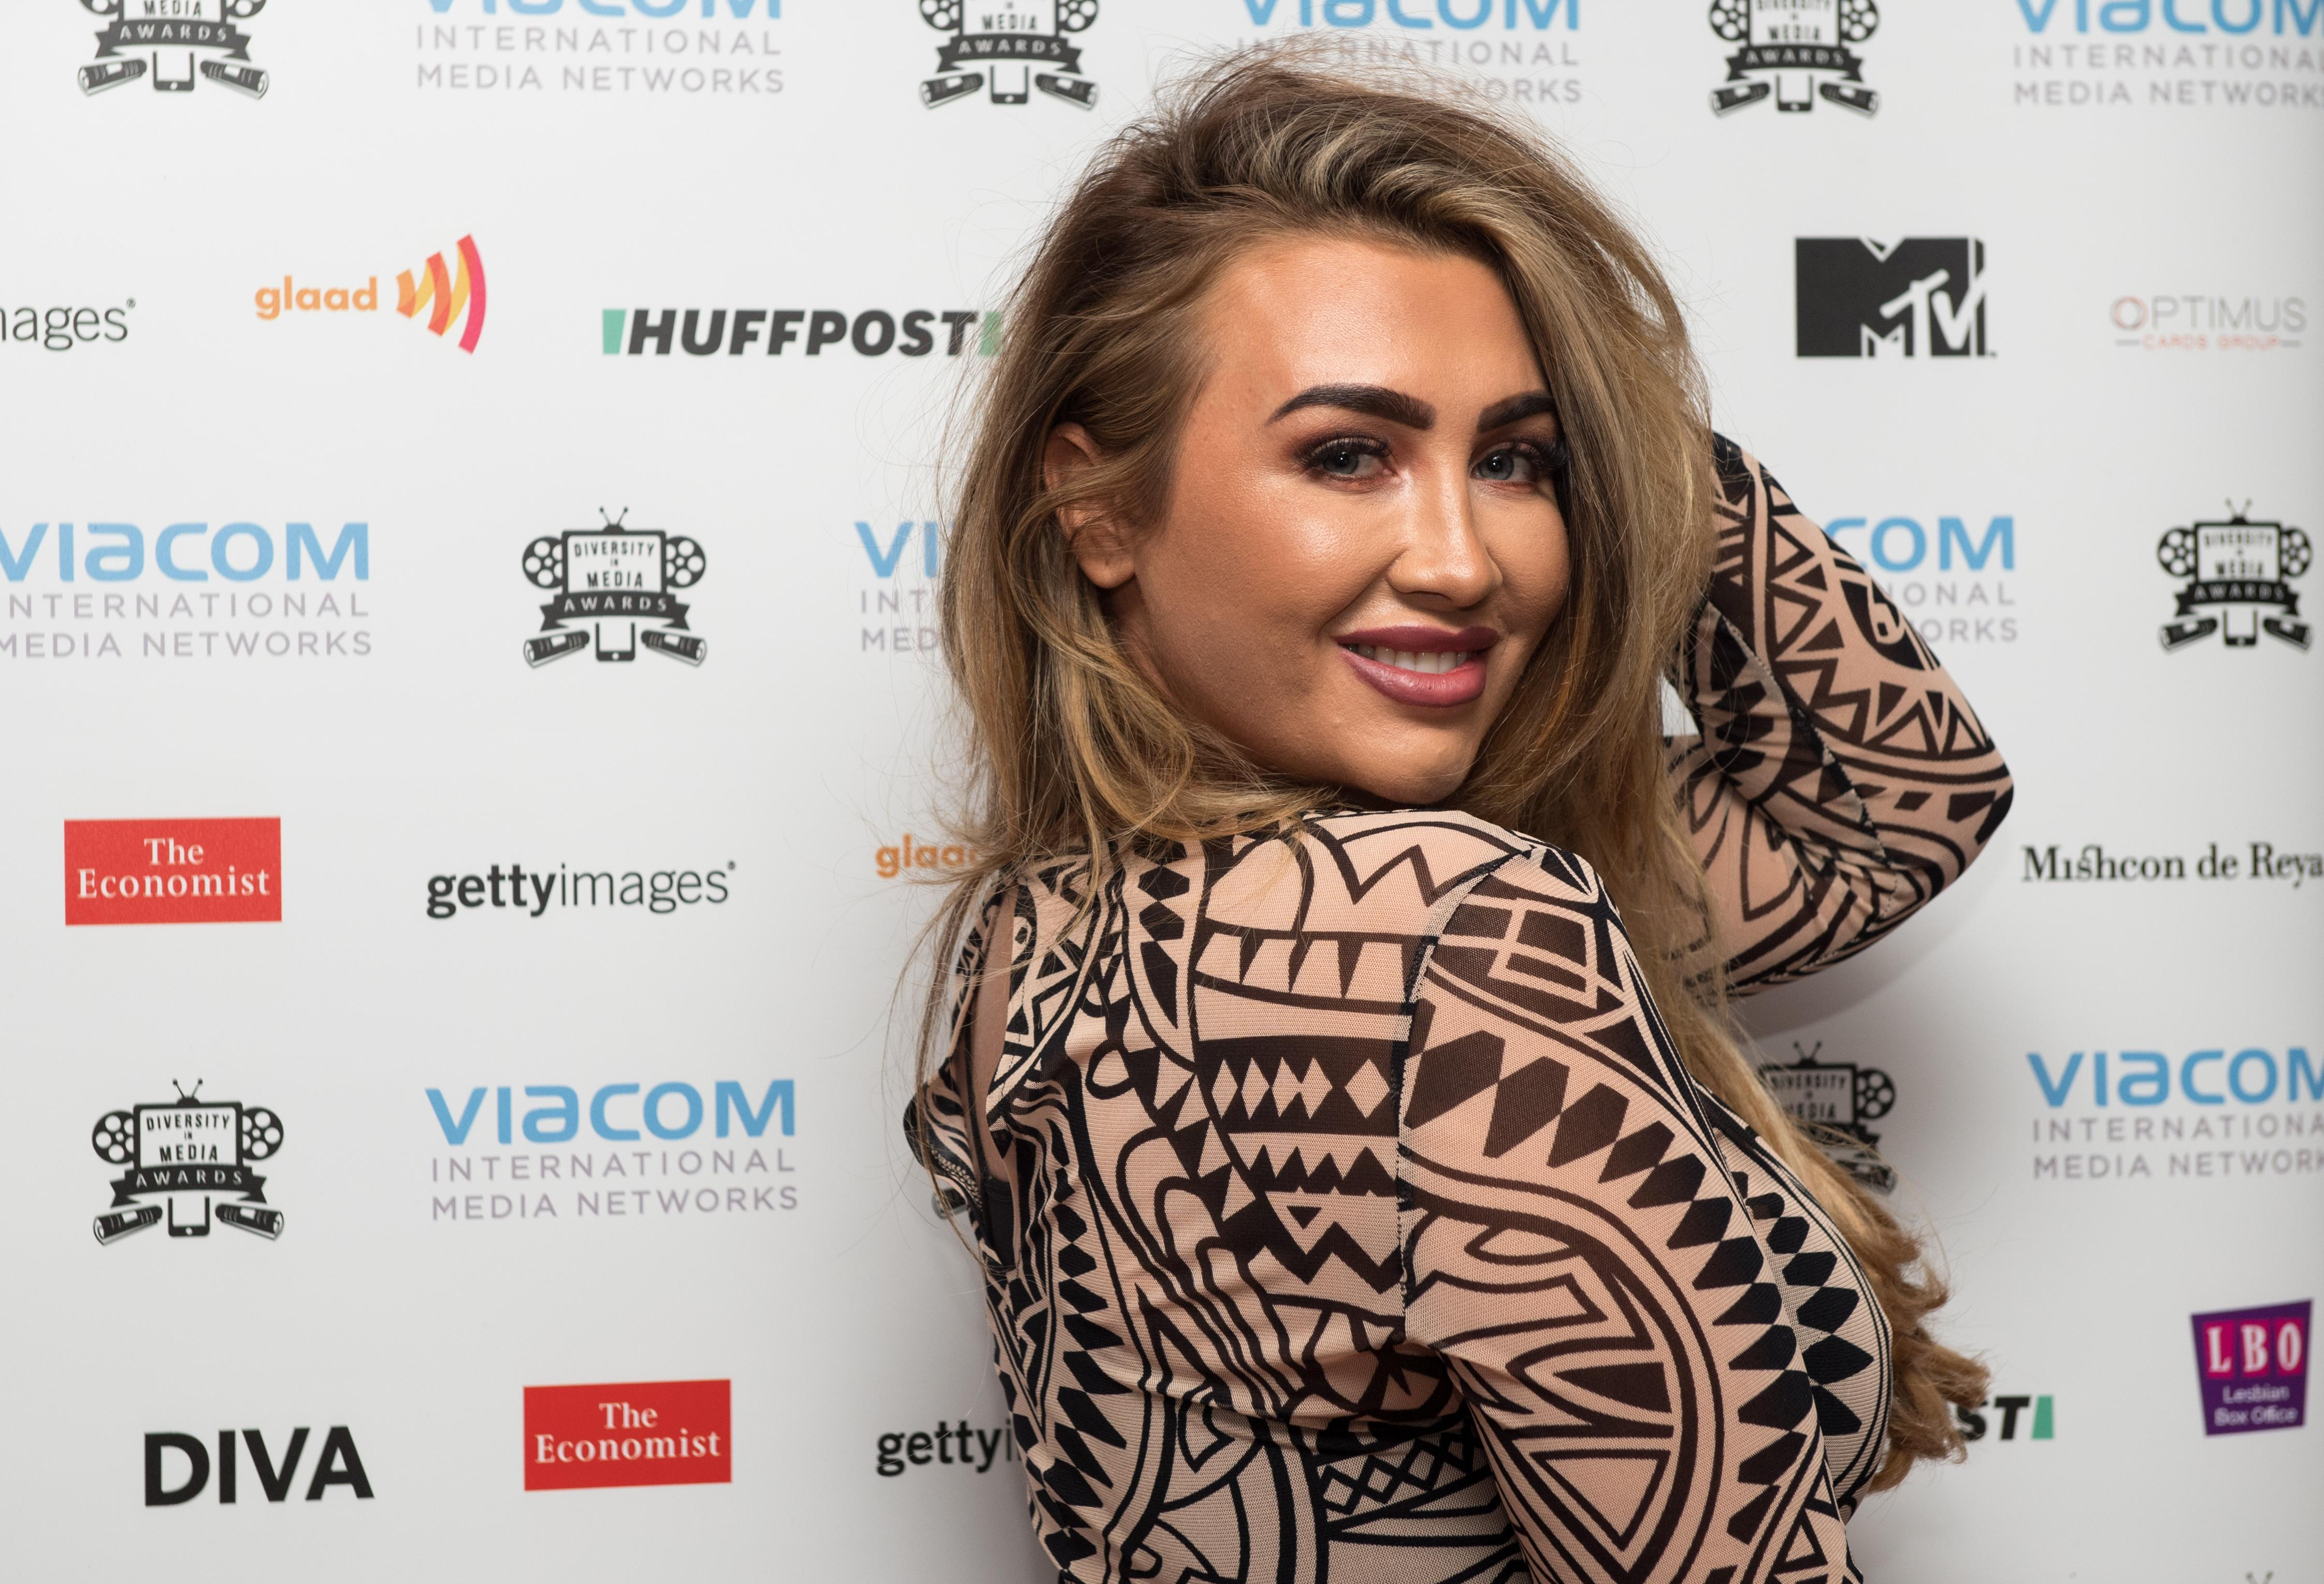 LONDON, ENGLAND - SEPTEMBER 15: Lauren Goodger poses for photographs at the Diversity in Media Awards on September 15, 2017 in London, England. (Photo by Chris J Ratcliffe/Getty Images)